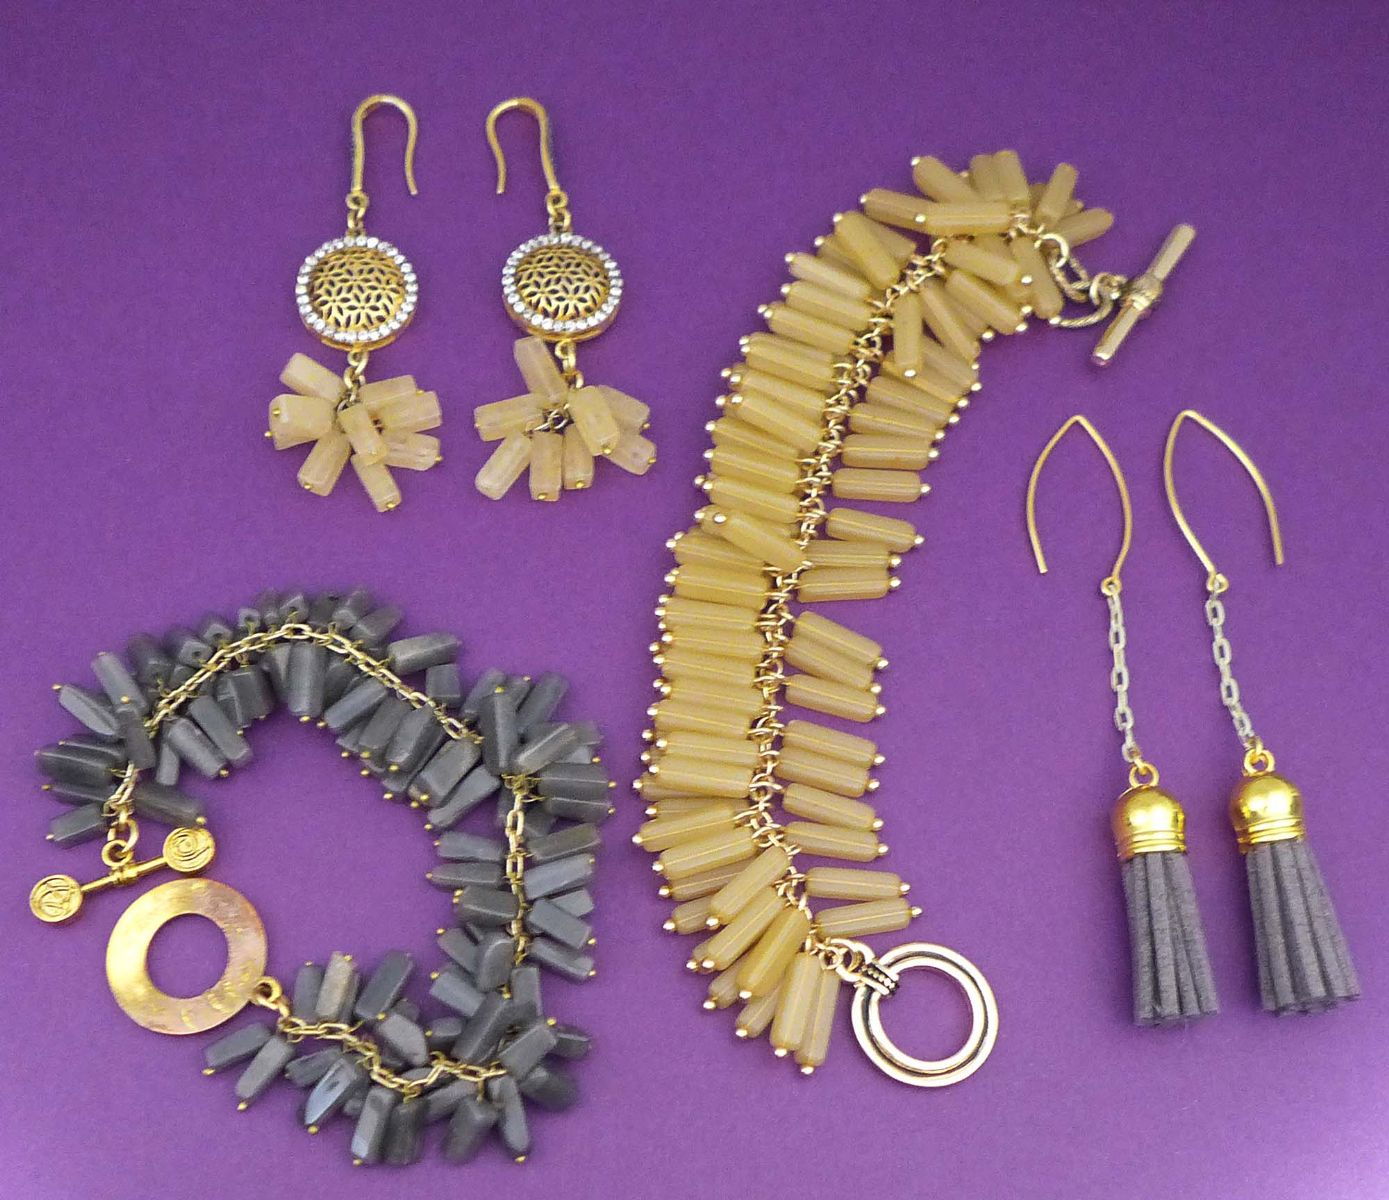 Spread of Jewelry made by Katy Richards